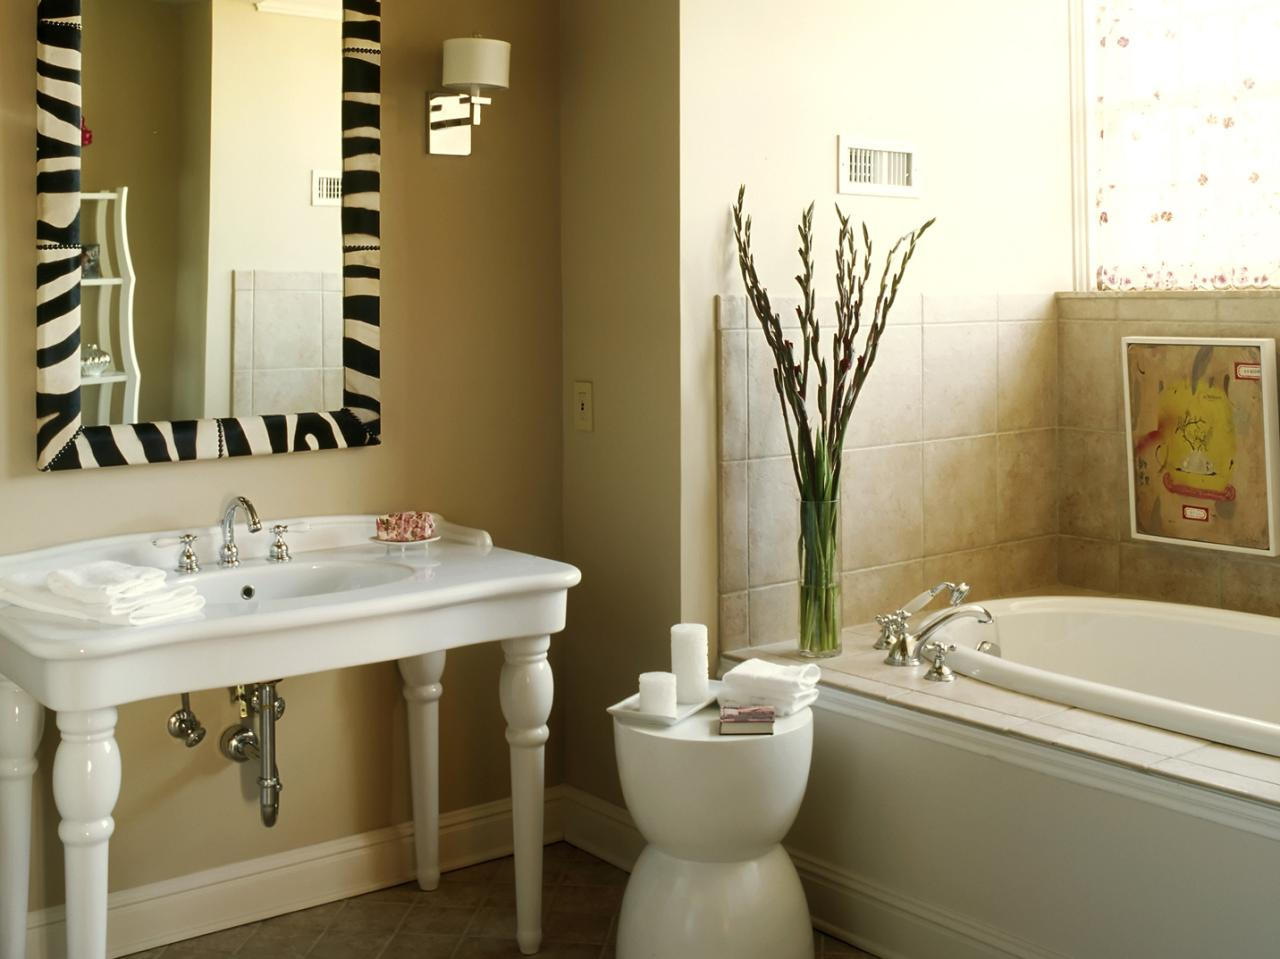 Victorian Bathroom Design Ideas: Pictures & Tips From HGTV | HGTV